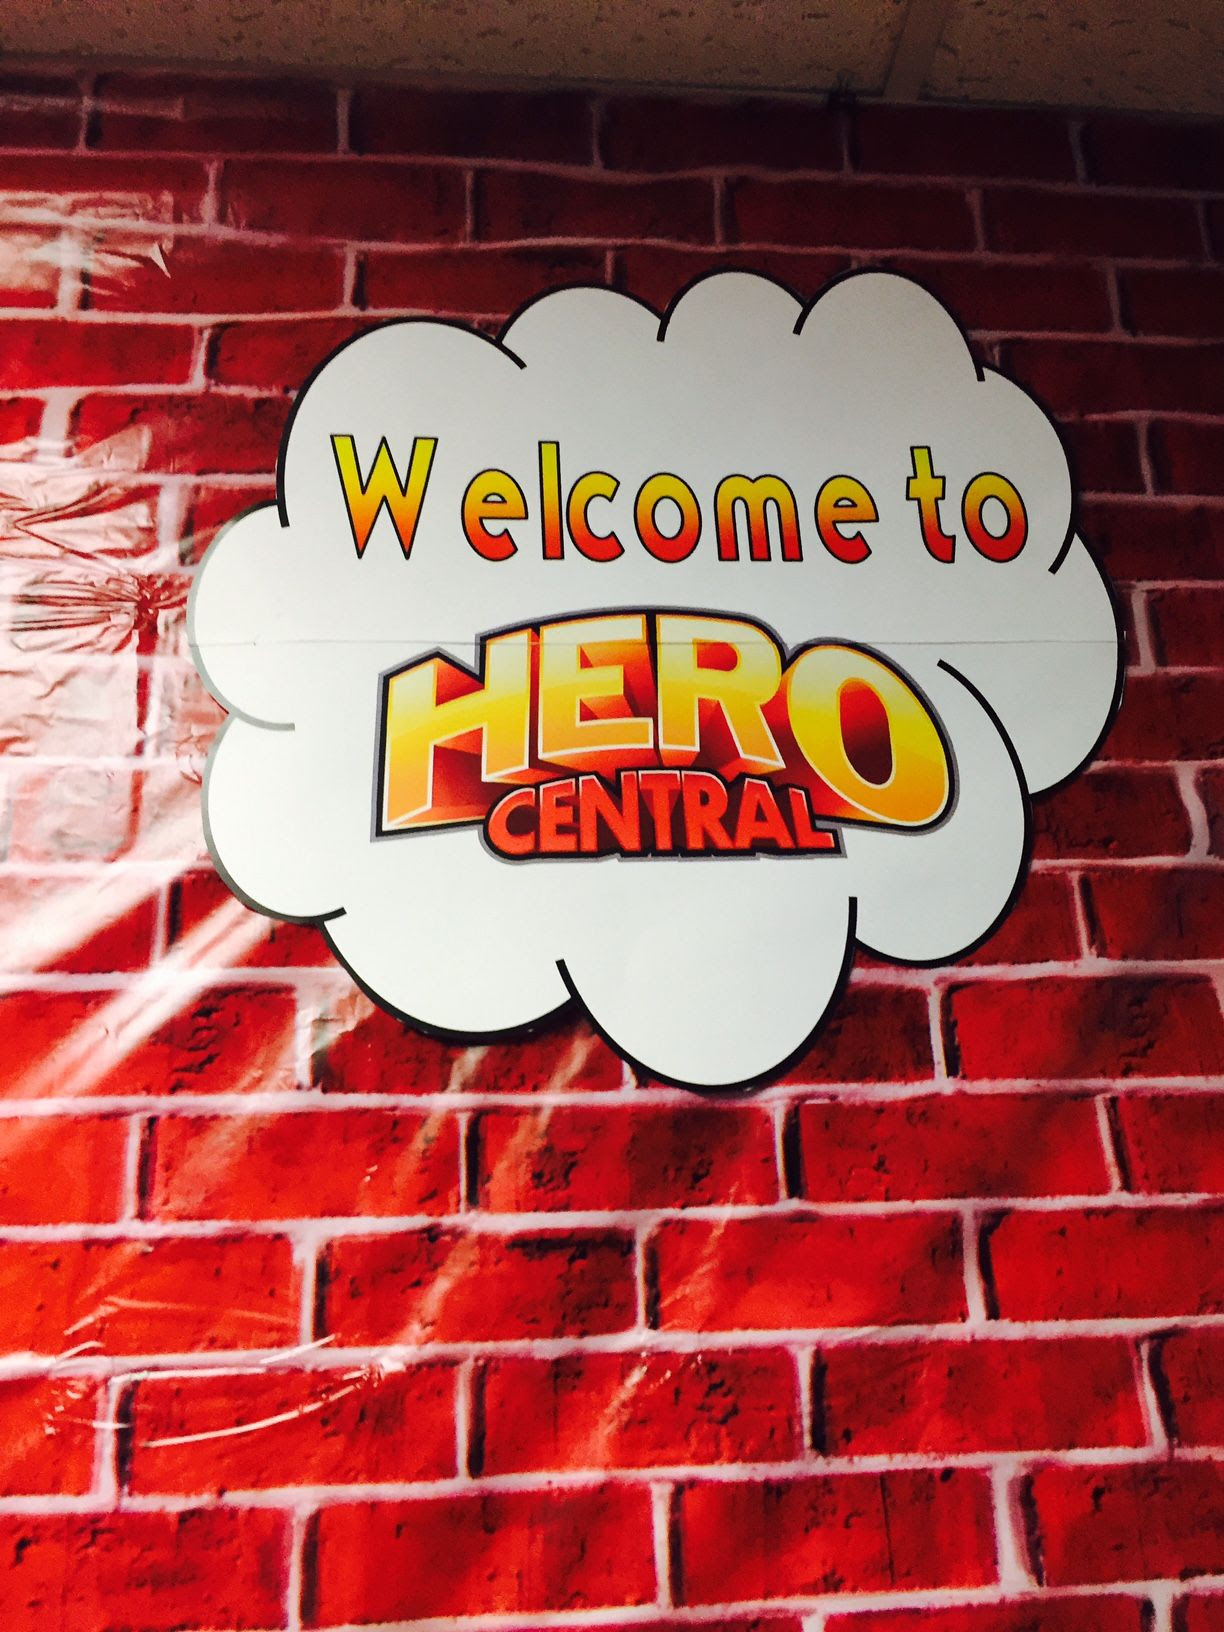 Welcome to Hero Central